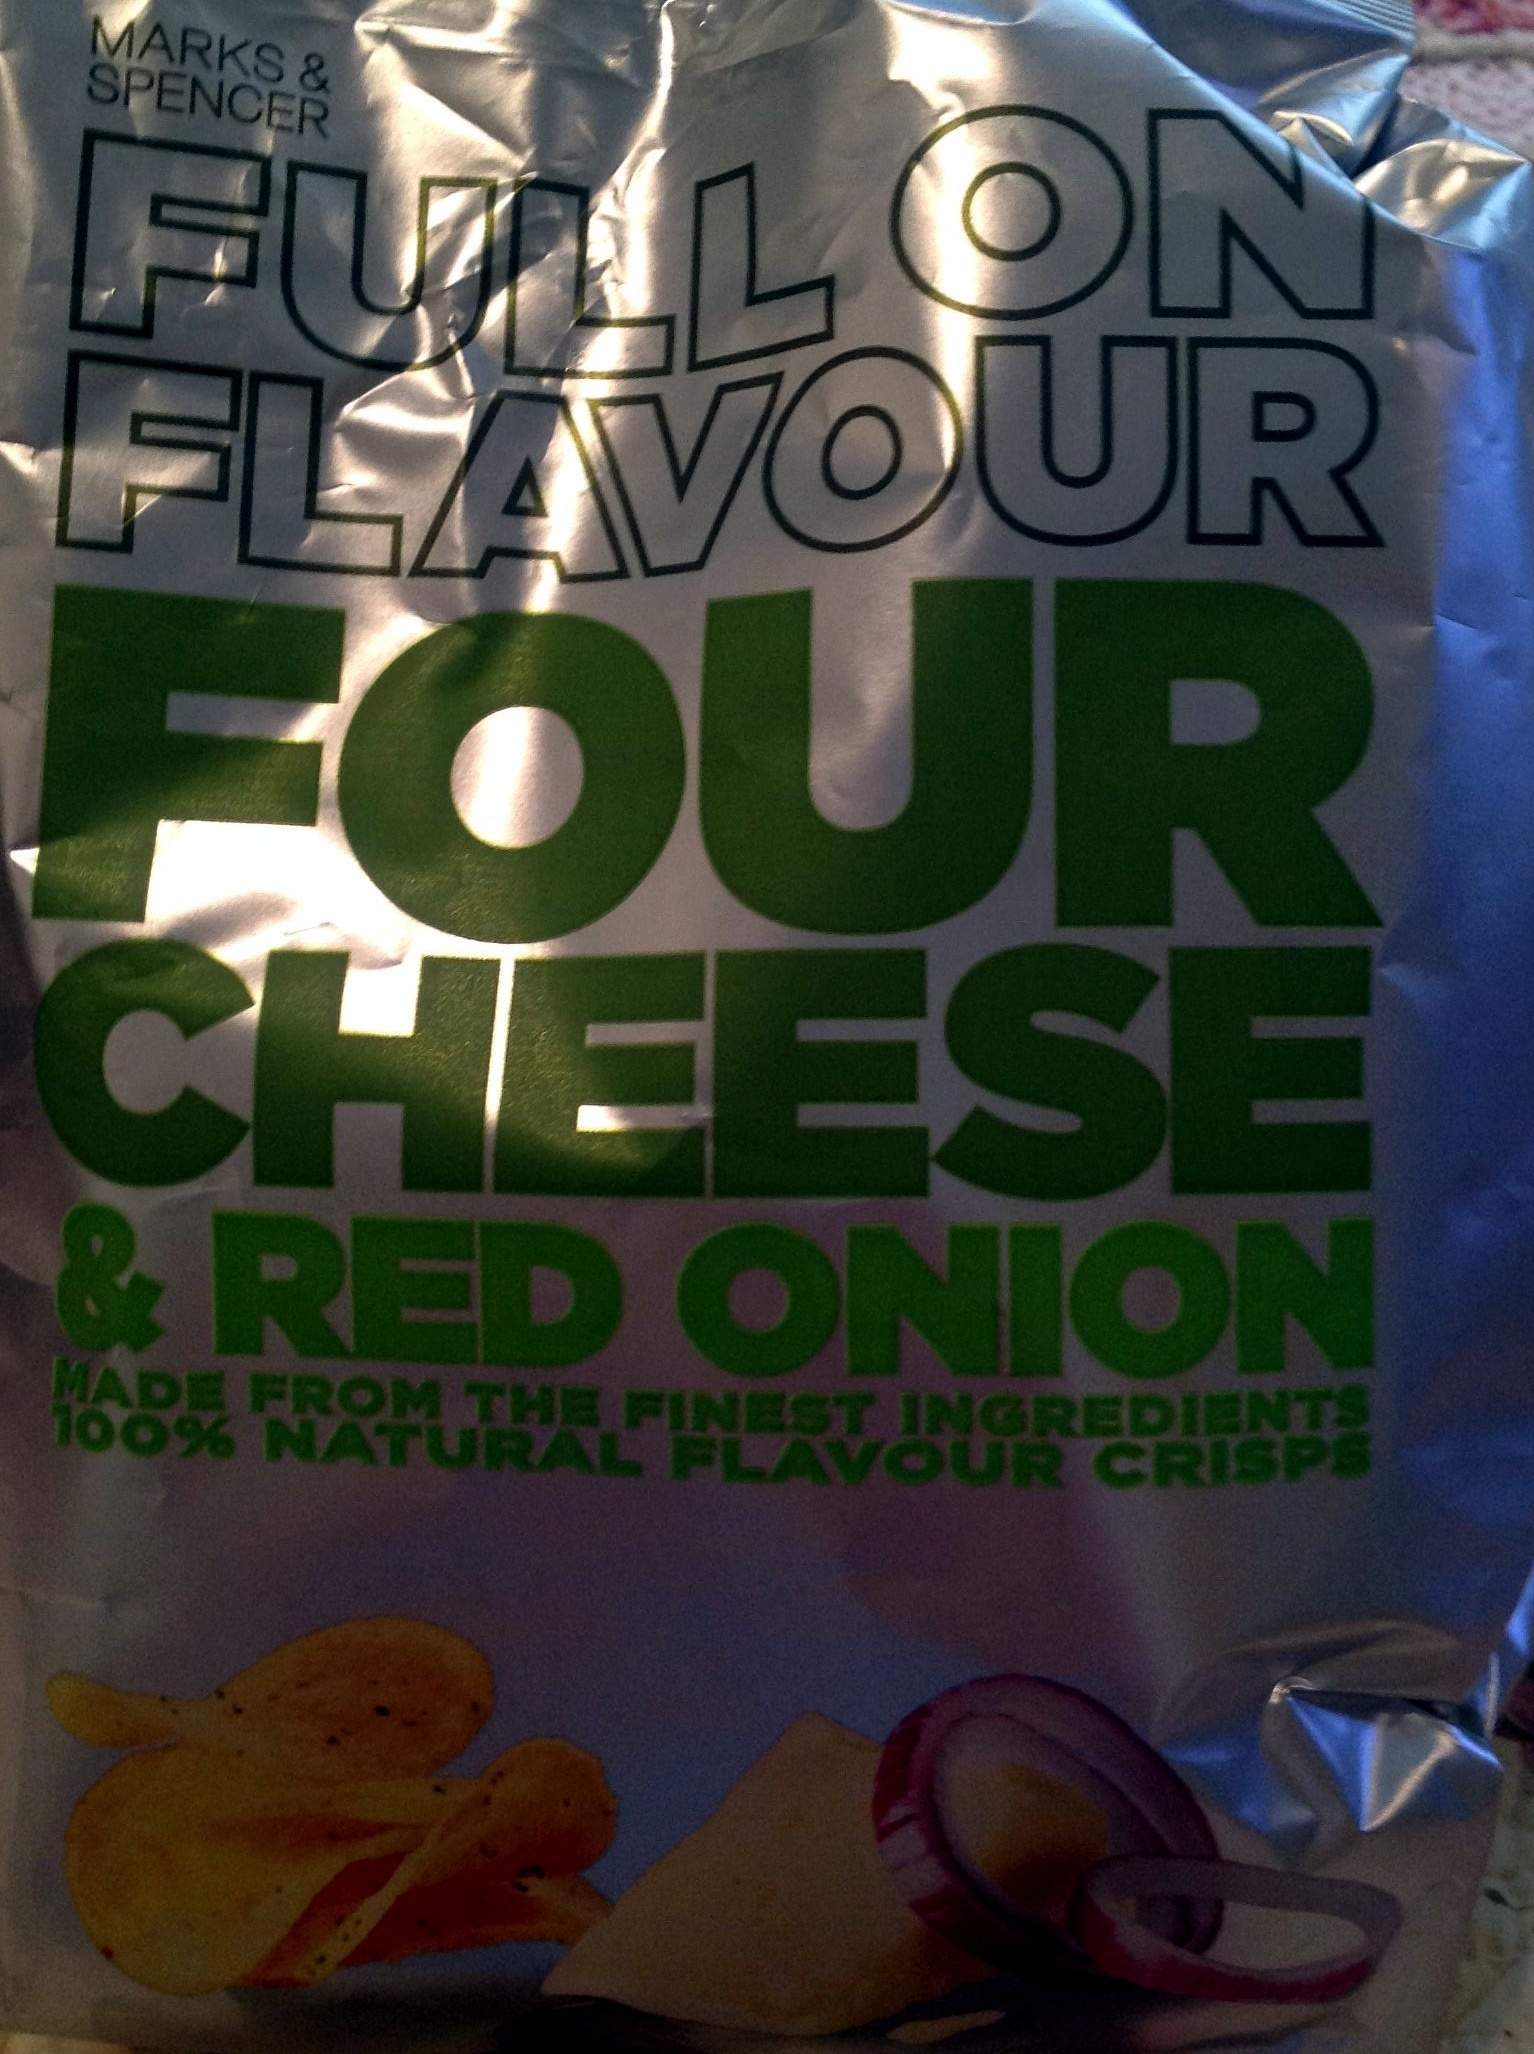 Full on flavour - Four cheese & red onion - Product - en